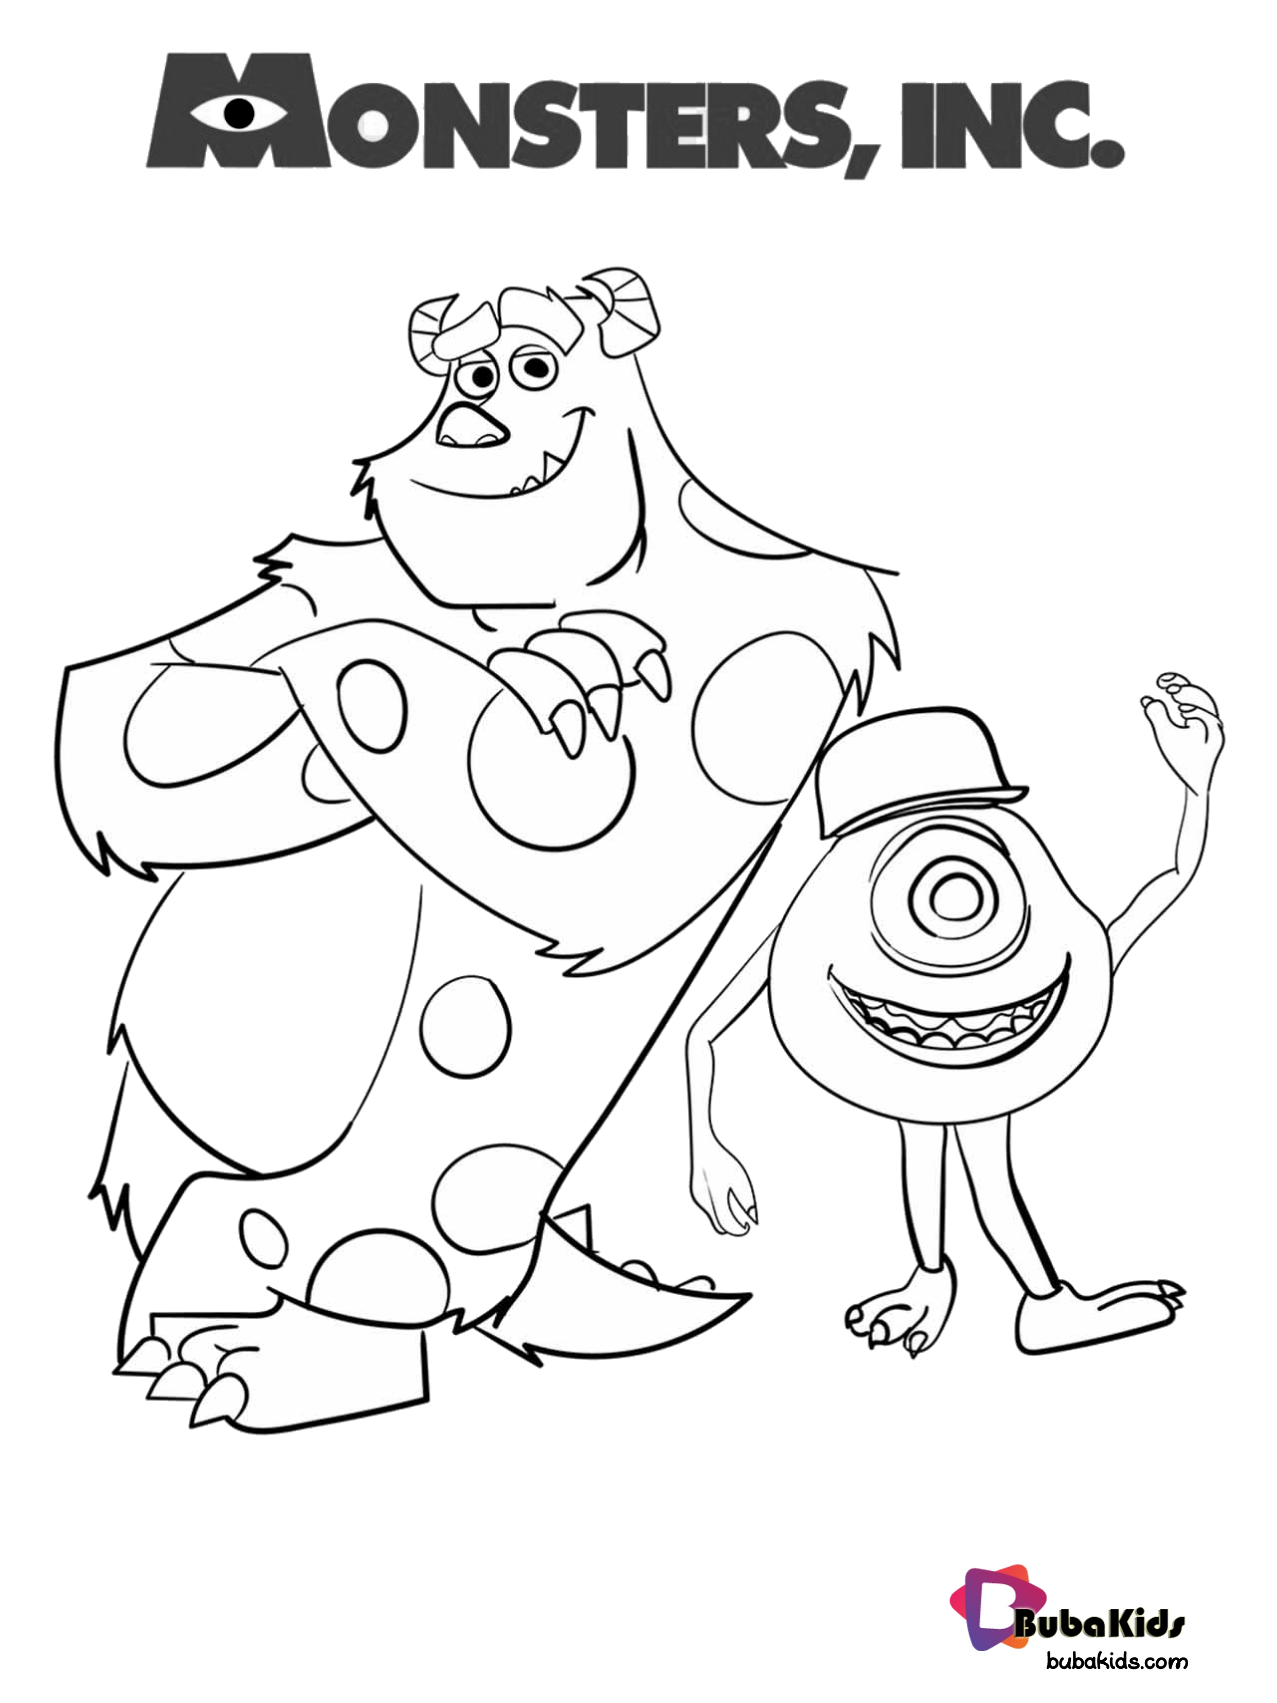 - Sulley And Mike Monster Inc Coloring Page. (With Images) Cartoon